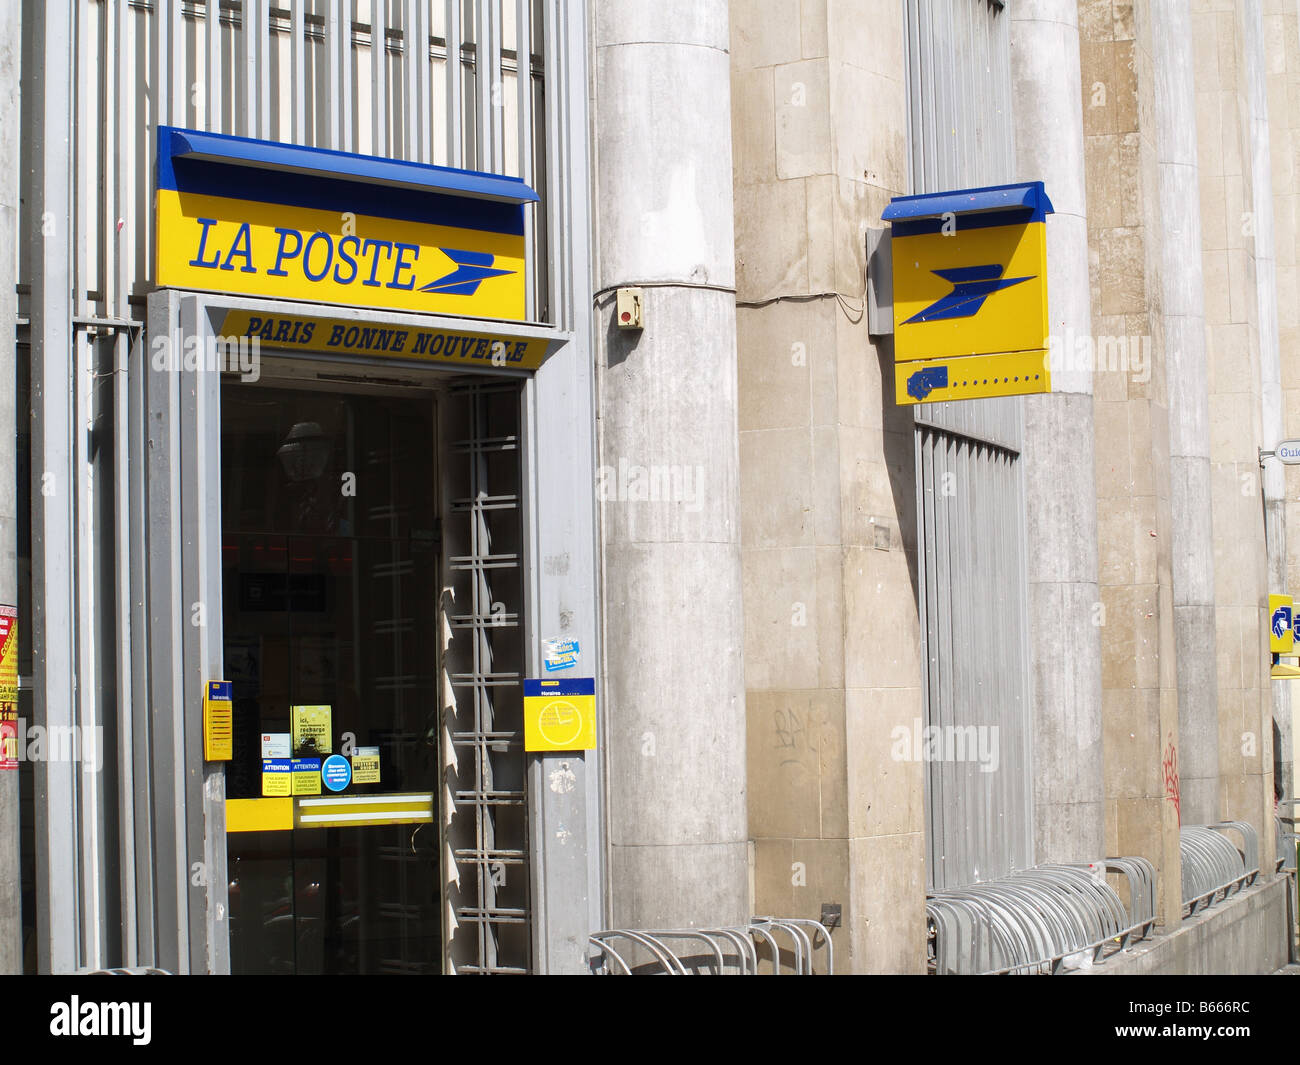 La Poste (Post Office) Paris france - Stock Image